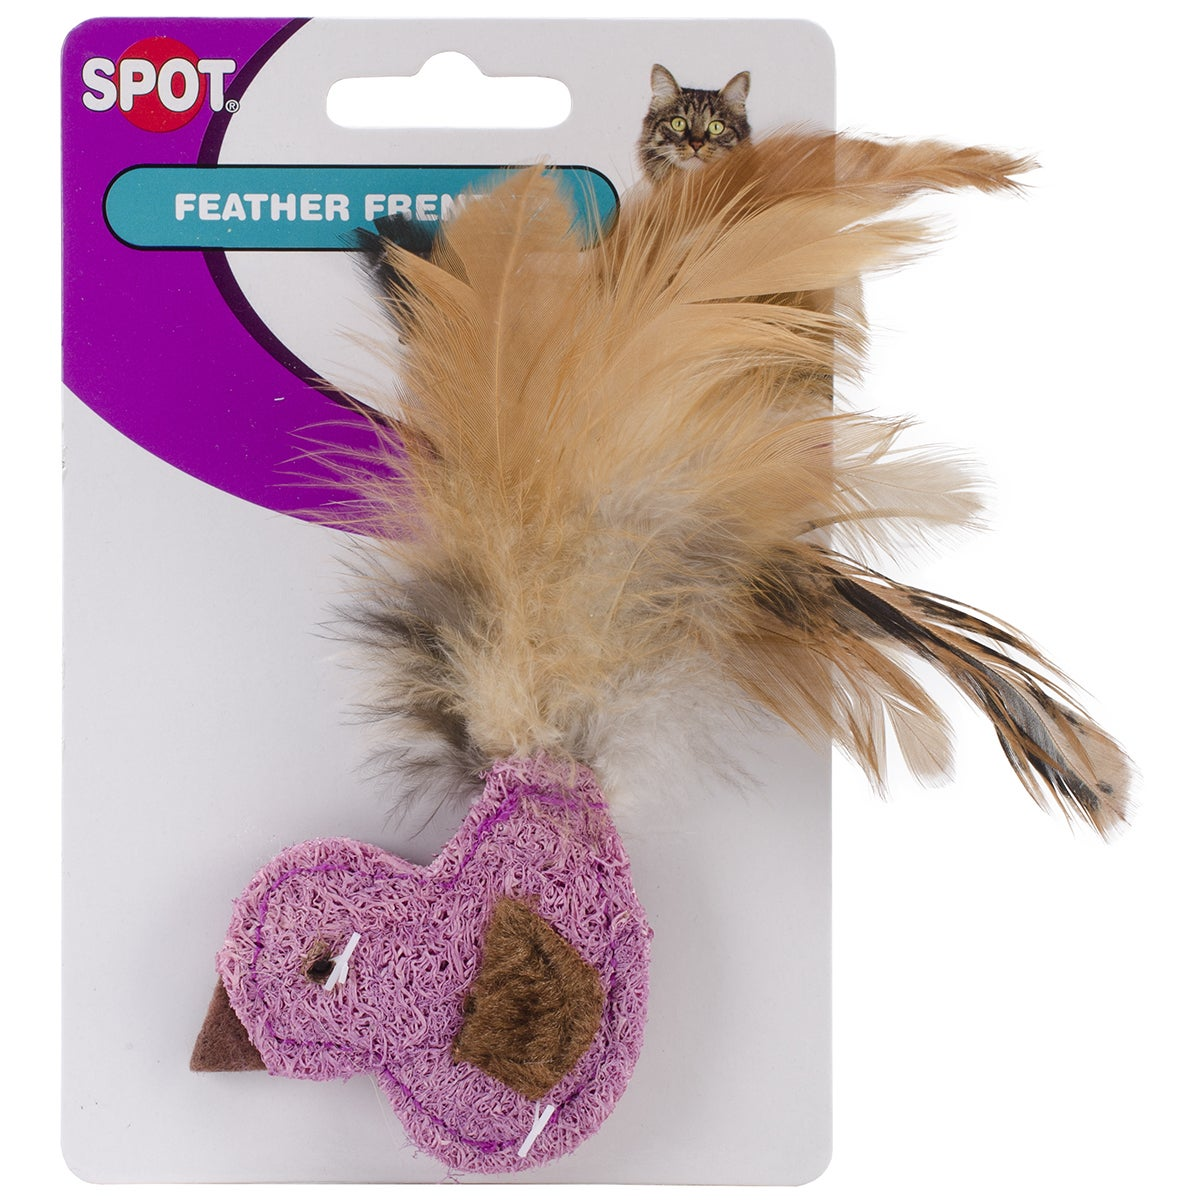 Ethical Feather Frenzy Cat Toy-Duck, Fish Or Butterfly Wi...